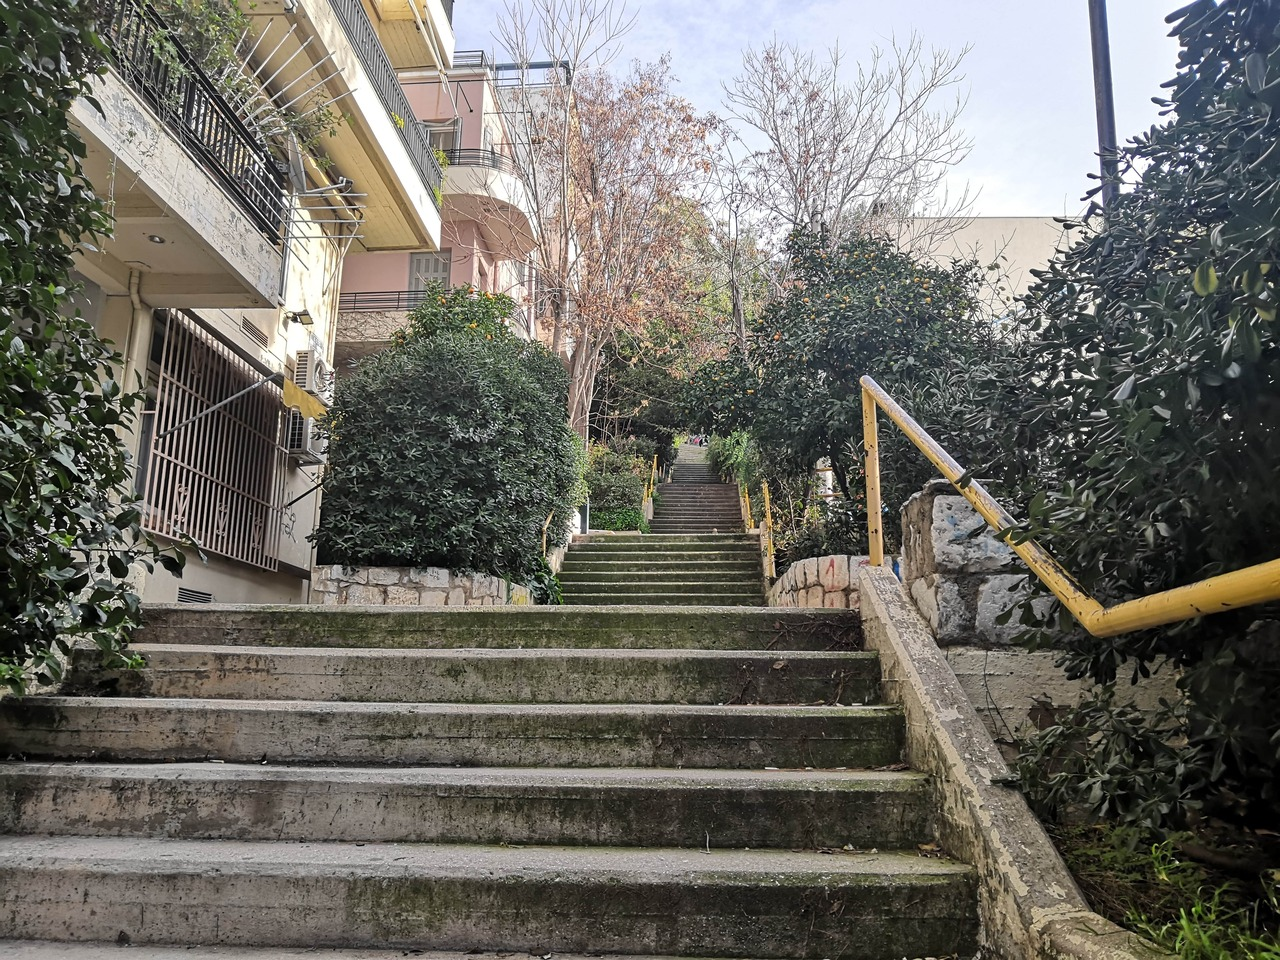 Urban staircase with bushes